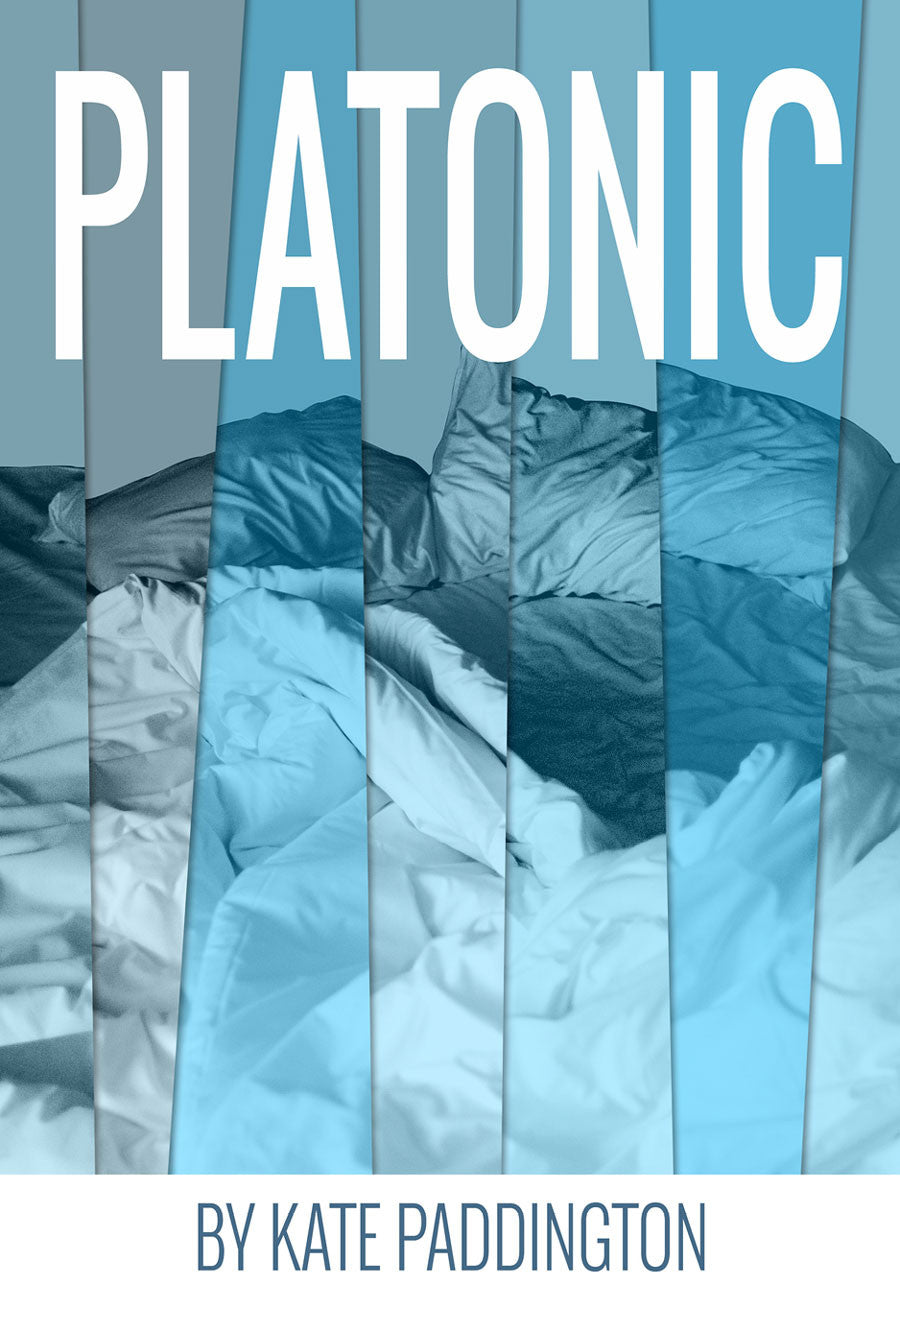 Platonic by Kate Paddington